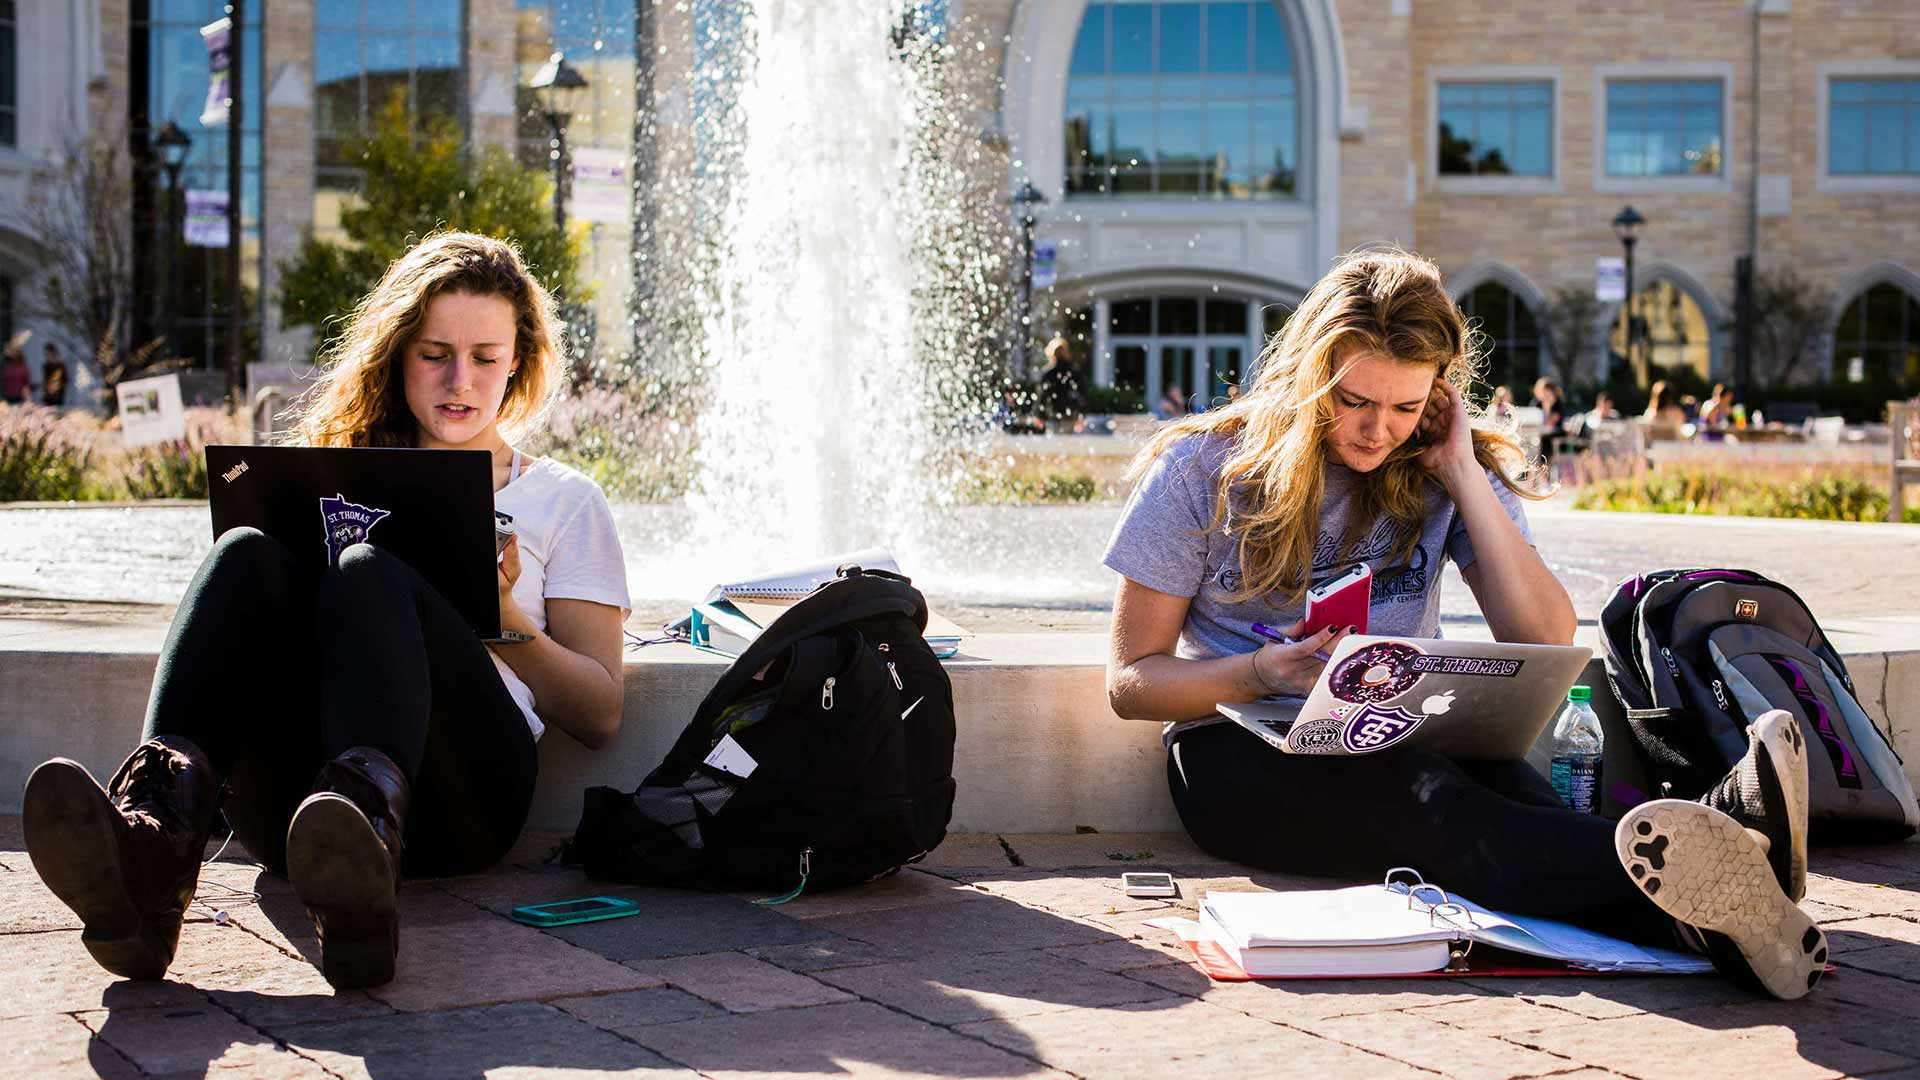 Students work on laptops beside Harpole Fountain.